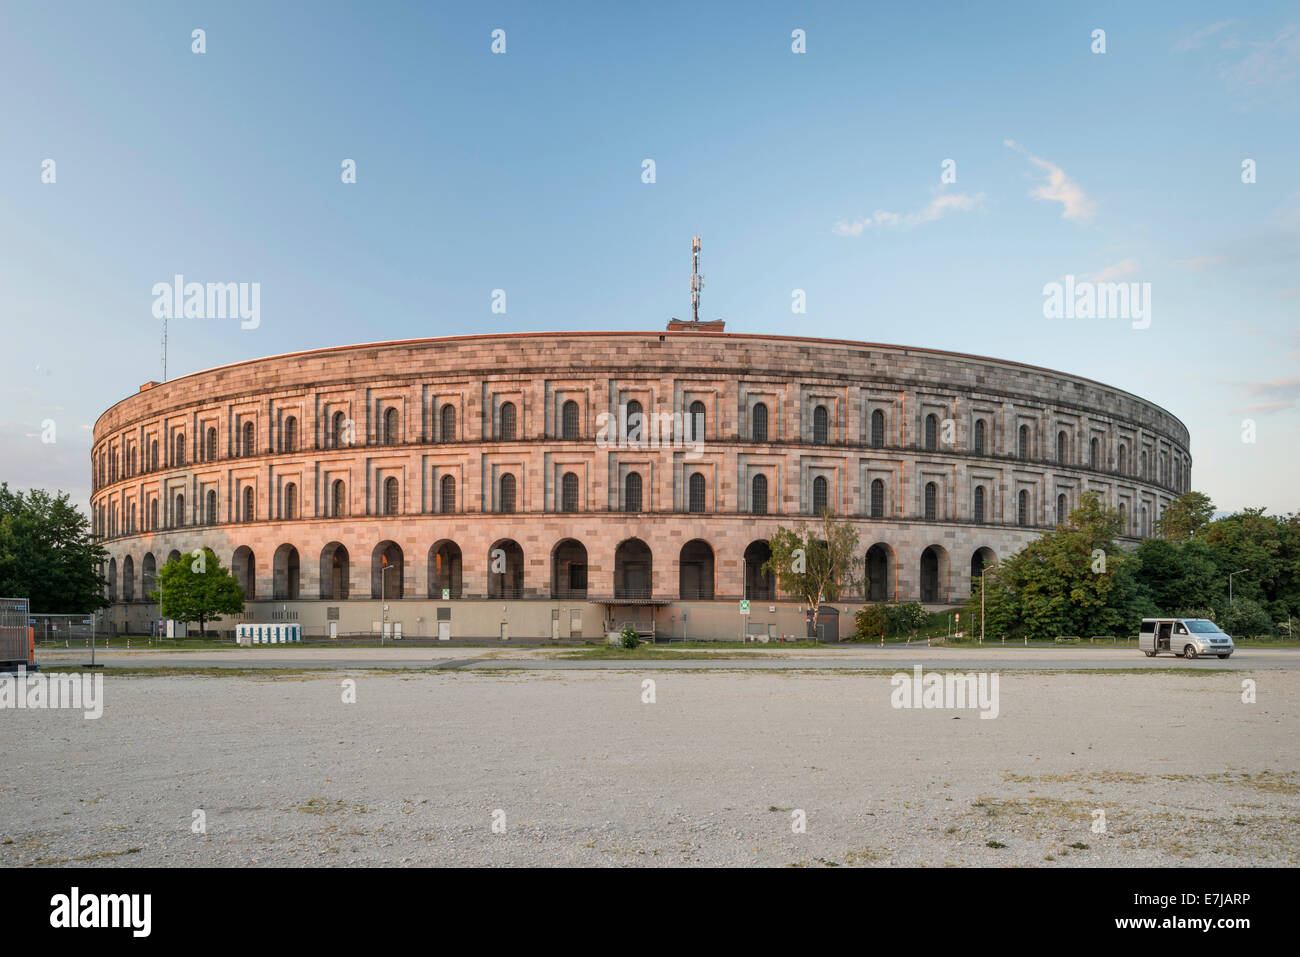 Congress Hall of the Nazi Party, 1933-1945, not completed, Documentation Centre Nazi Party Rally Grounds, Nuremberg, - Stock Image